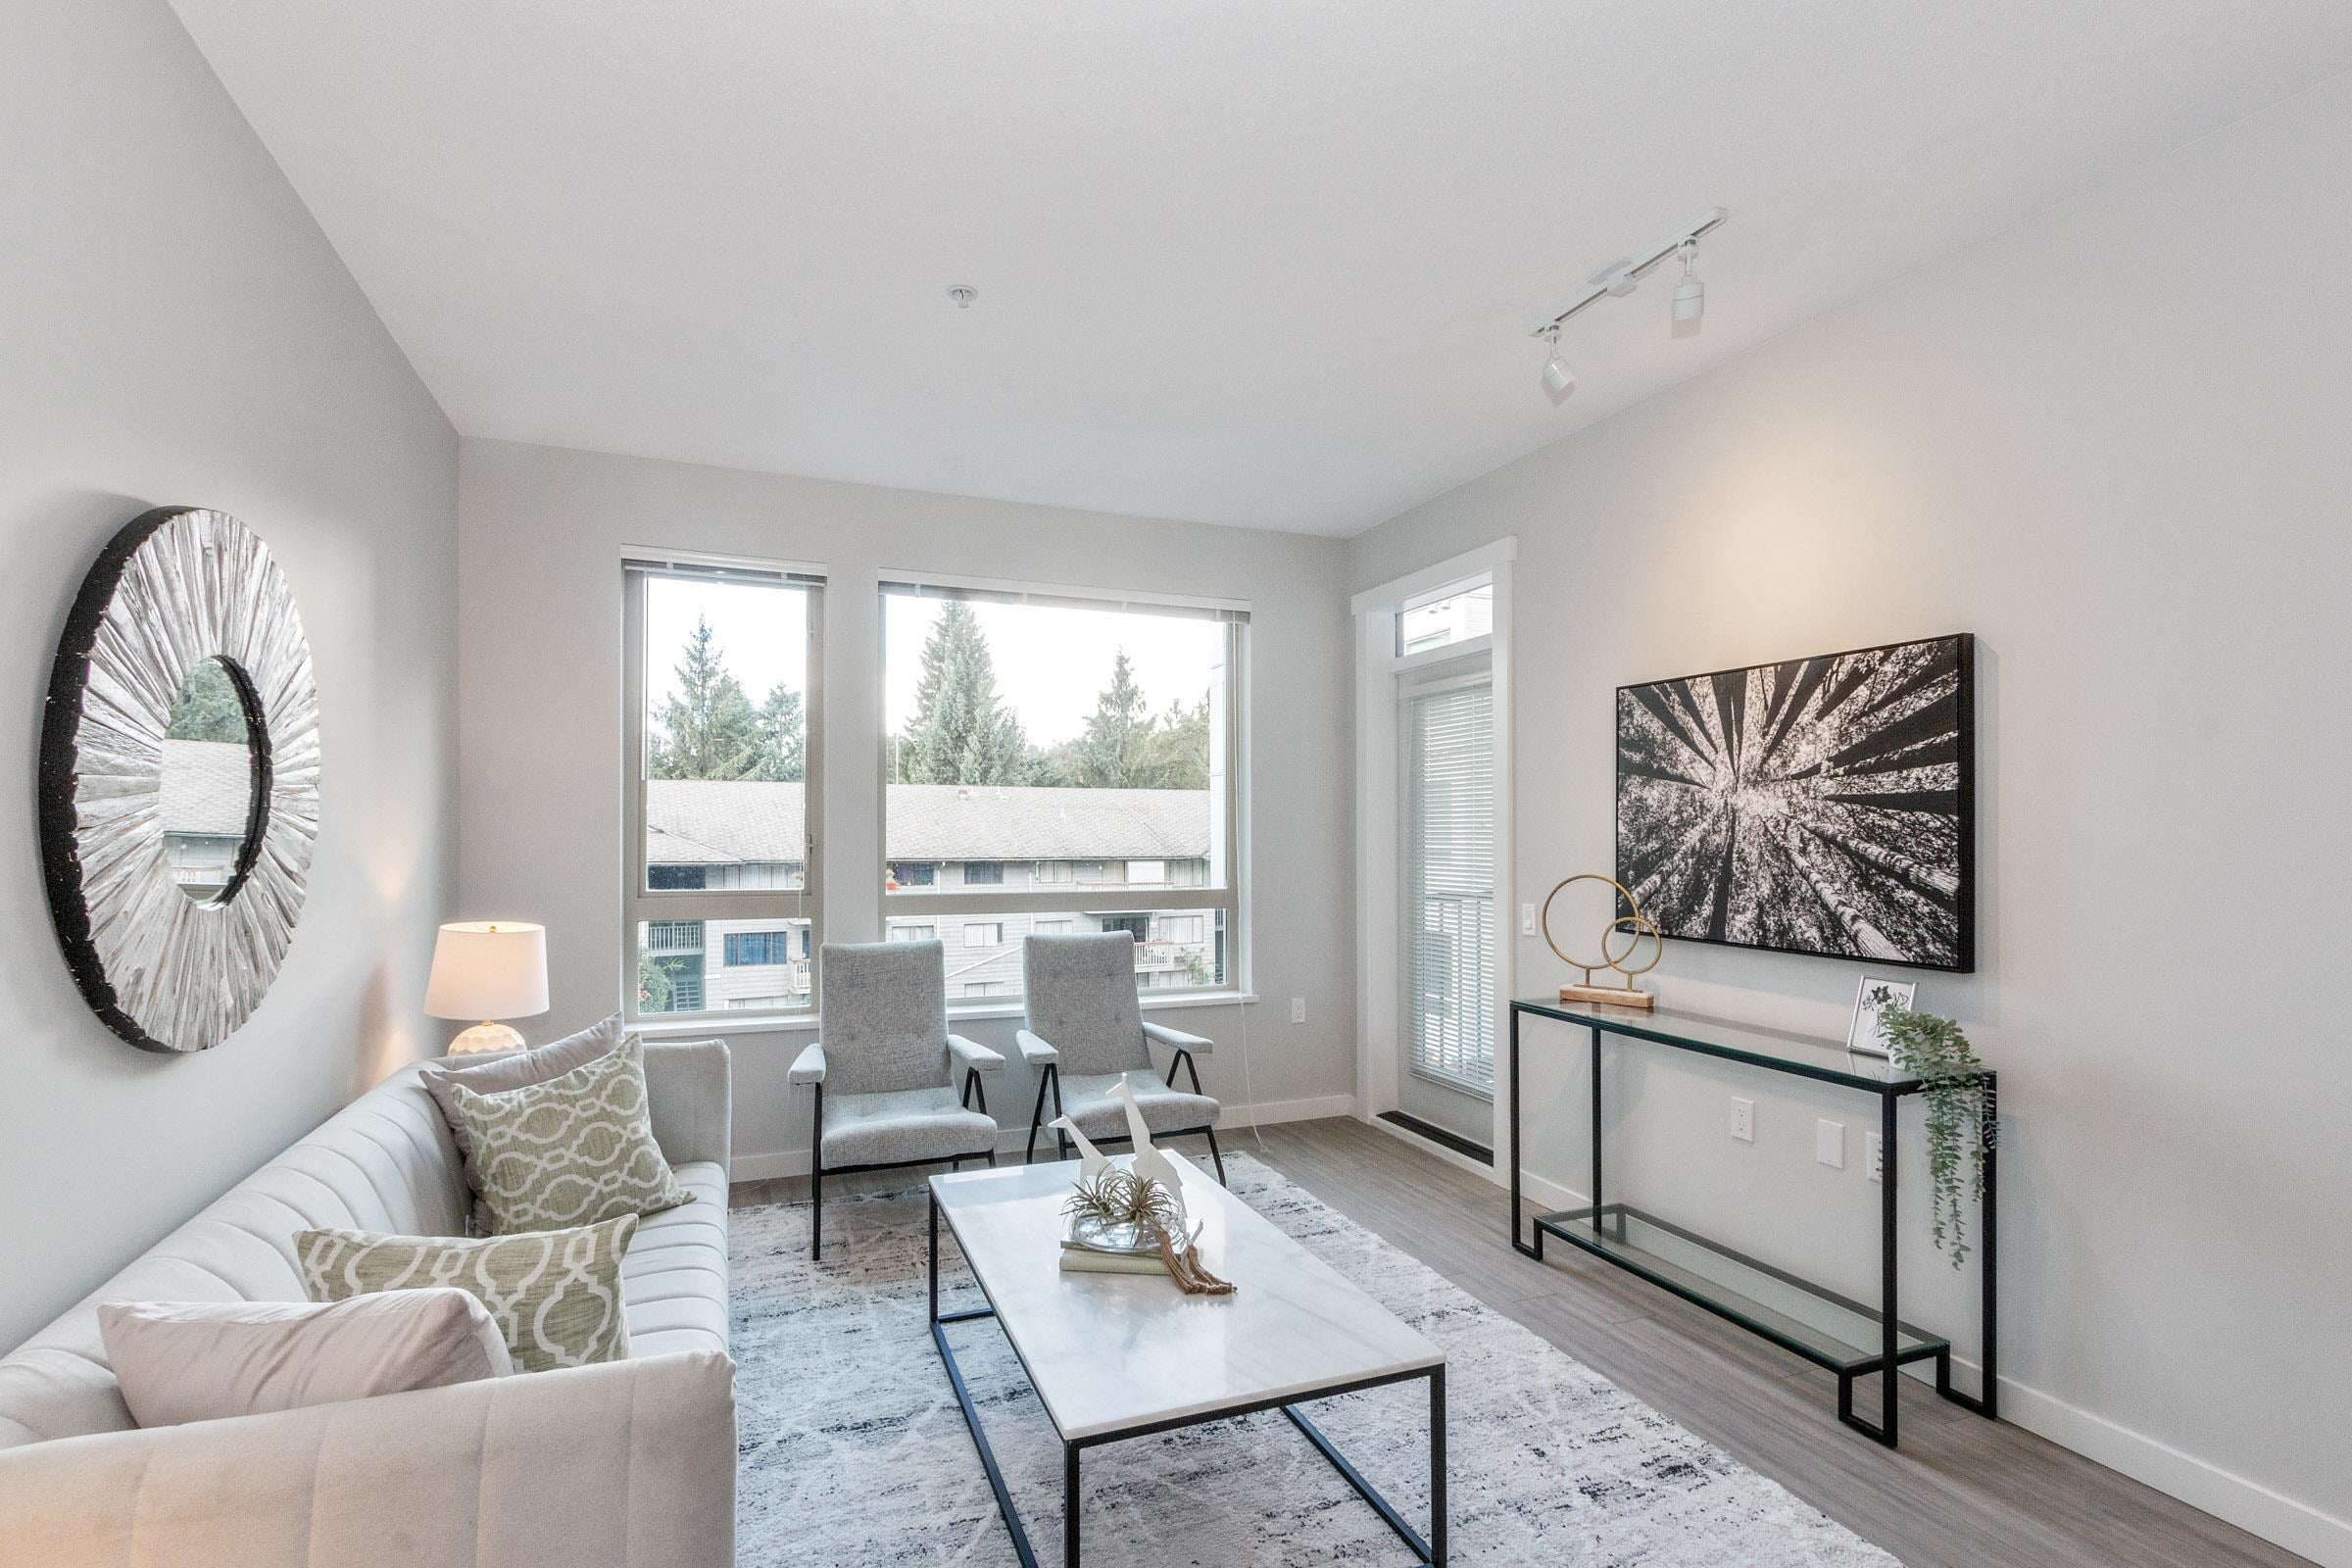 316 2651 LIBRARY LANE - Lynn Valley Apartment/Condo for sale, 2 Bedrooms (R2622878) - #2